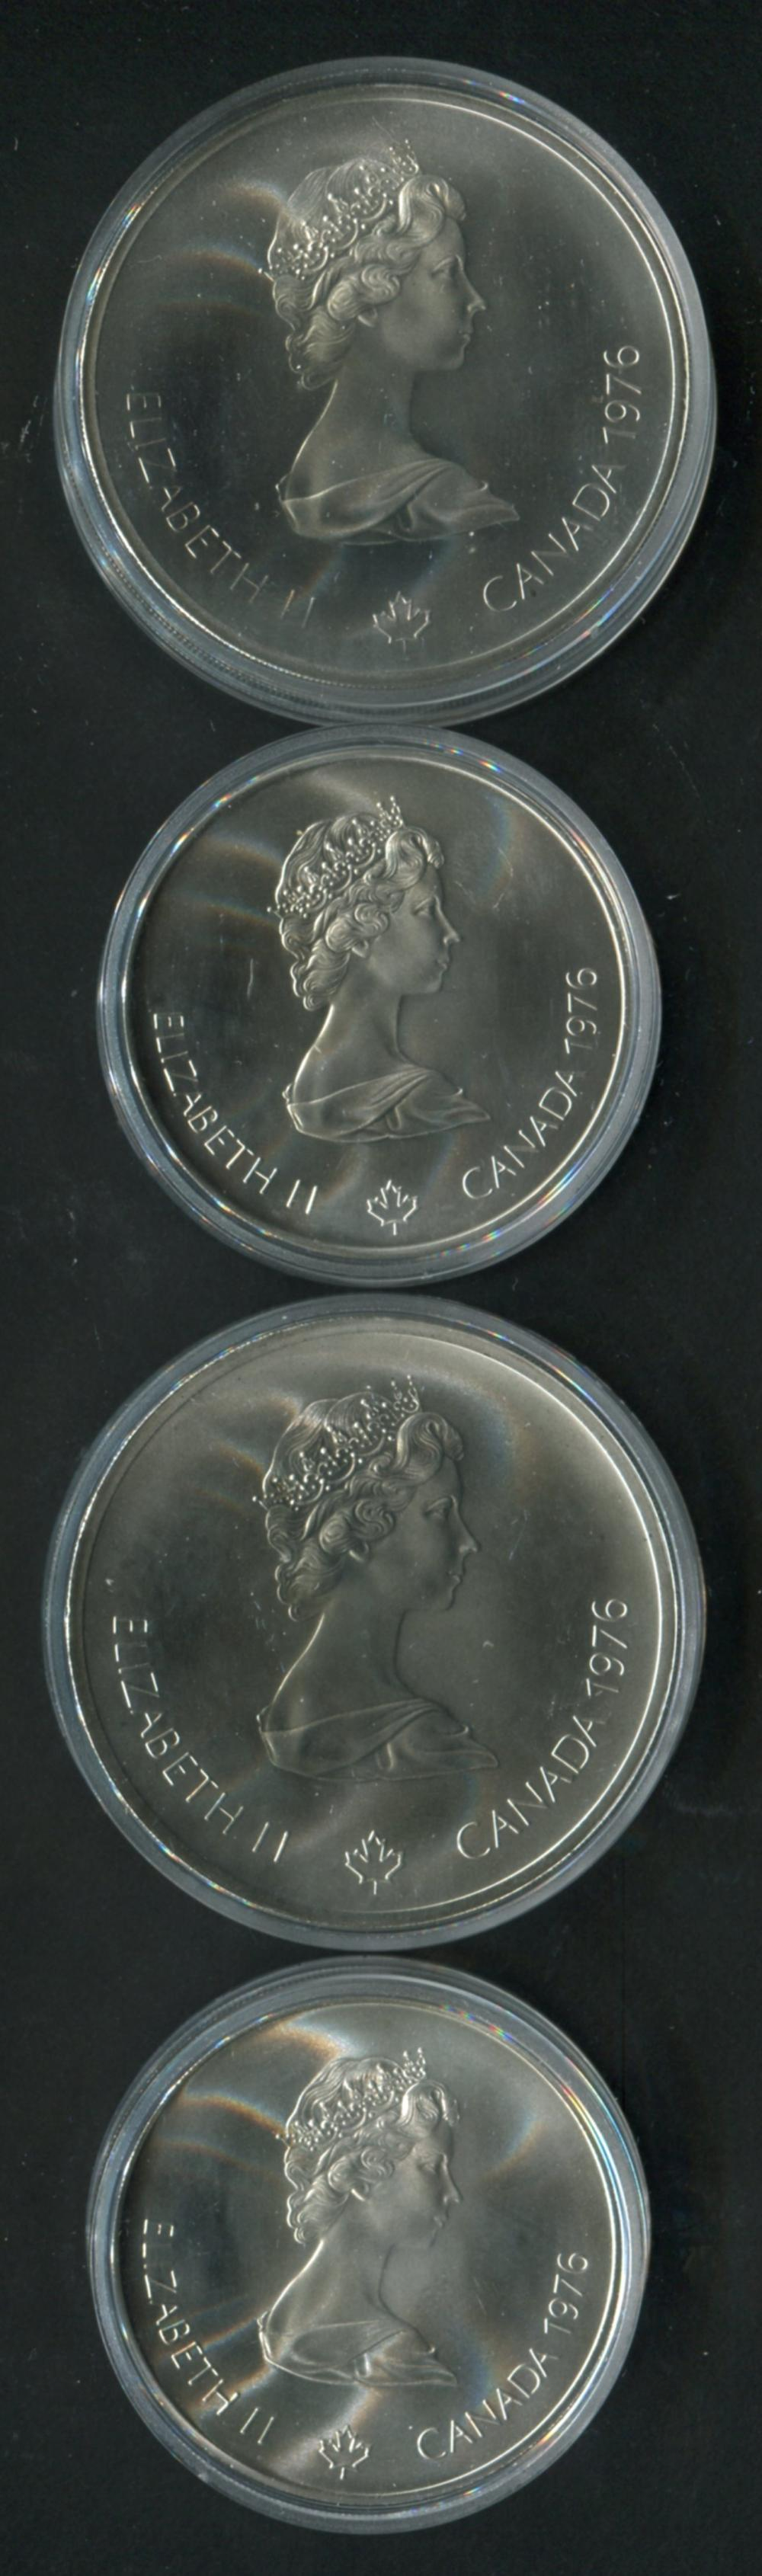 Canada 1976 Olympic Silver Coin Set